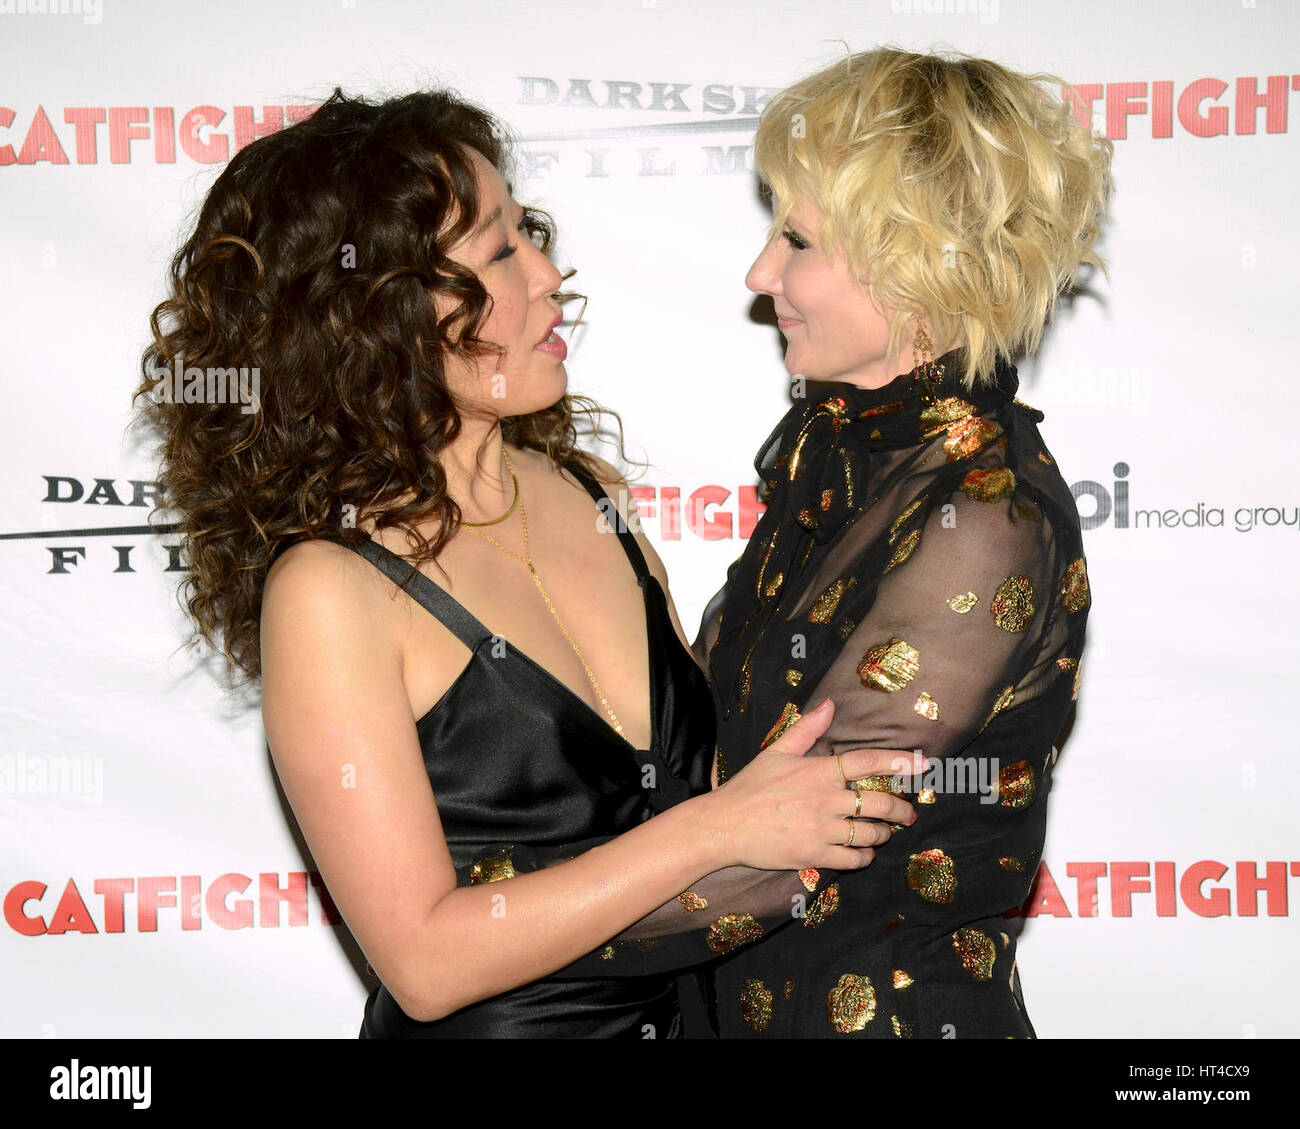 Sandra Oh and Anne Heche attends the premiere of Dark Sky Films' 'Catfight' at Cinefamily on March 2, - Stock Image